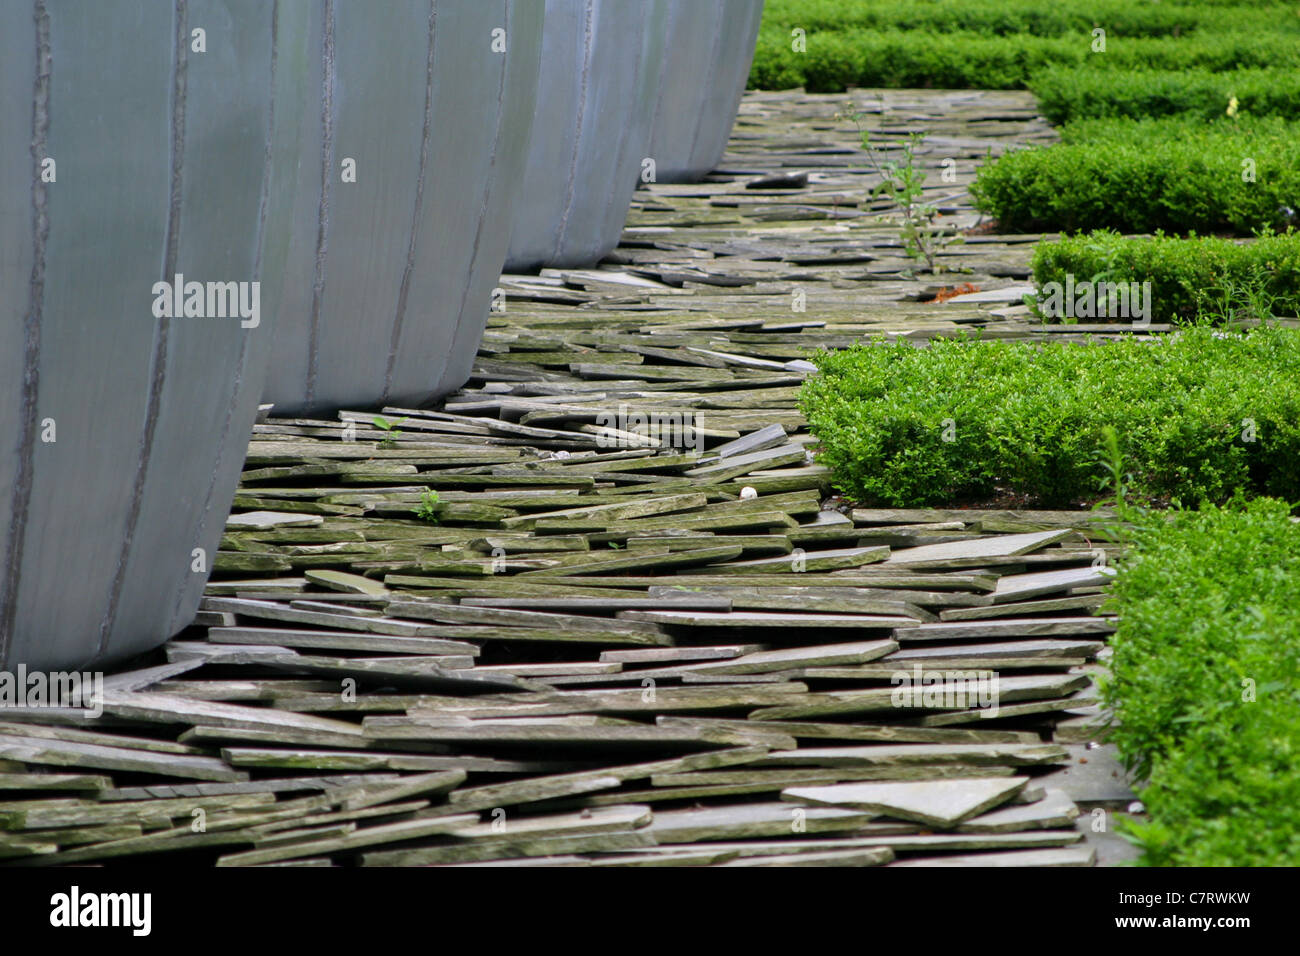 Garden Design: Slate Stone Path   Stock Image